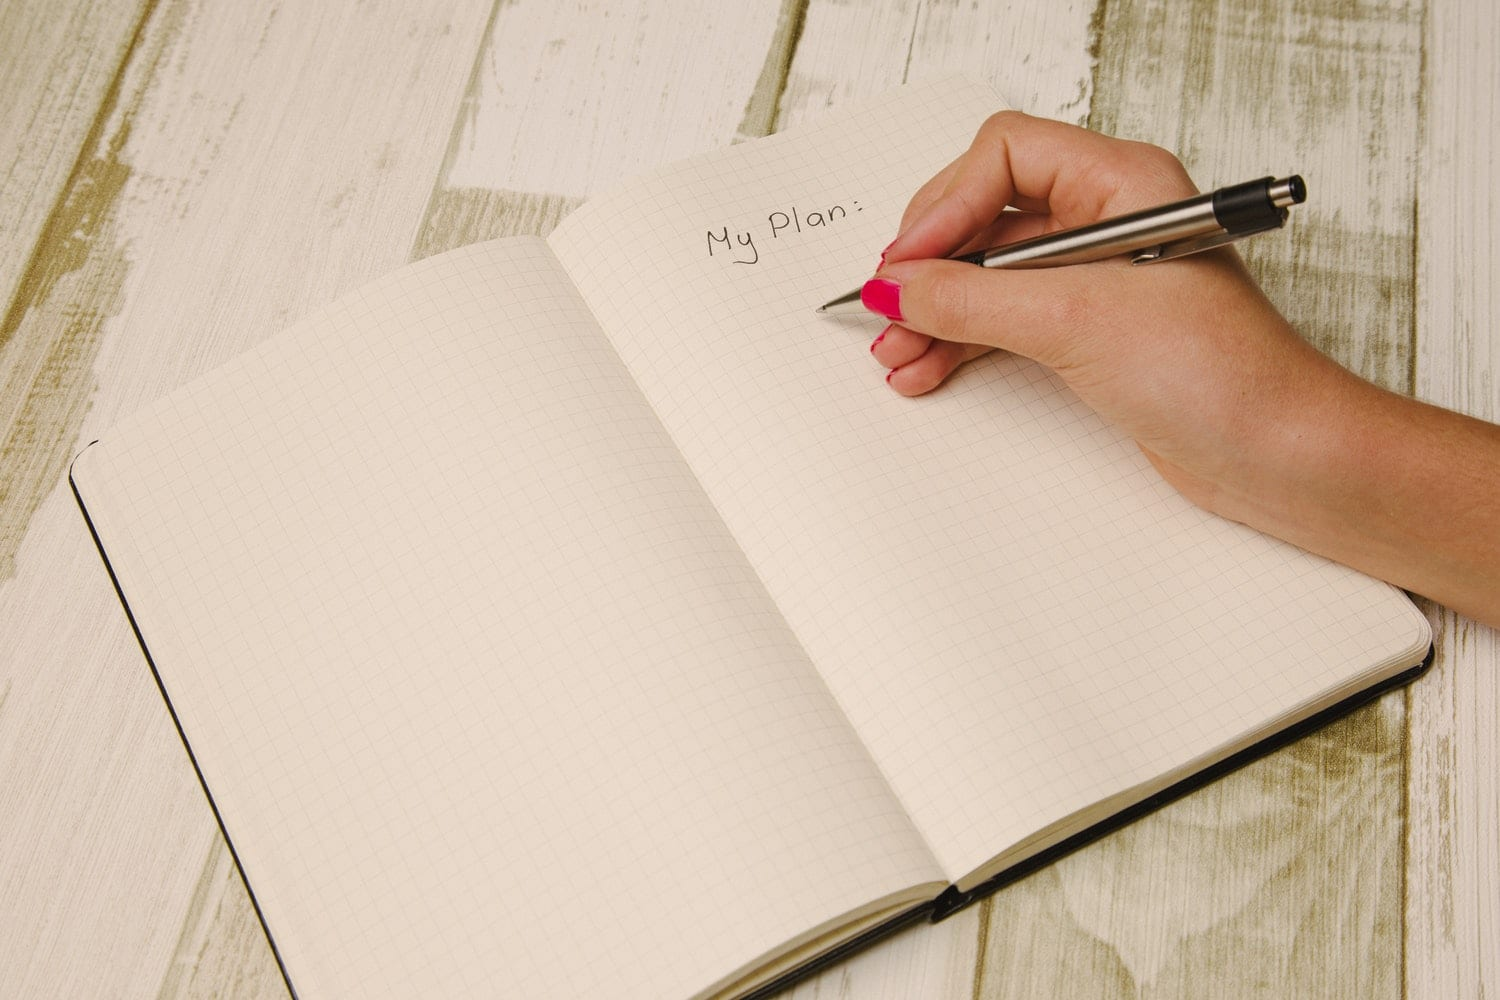 Writing domestic cleaning plan on notebook